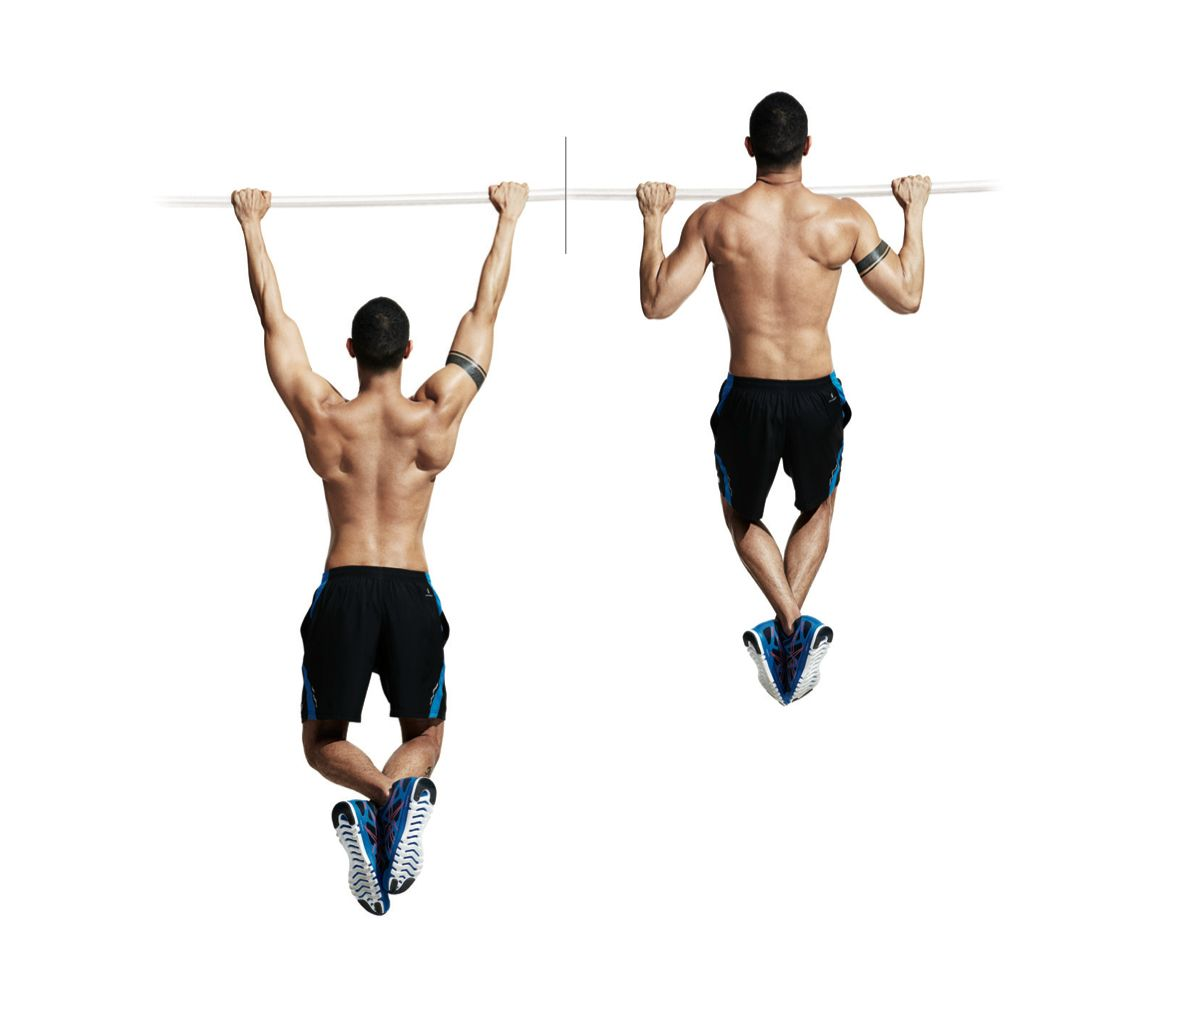 Forum on this topic: How to Get a Great Body Weight , how-to-get-a-great-body-weight/